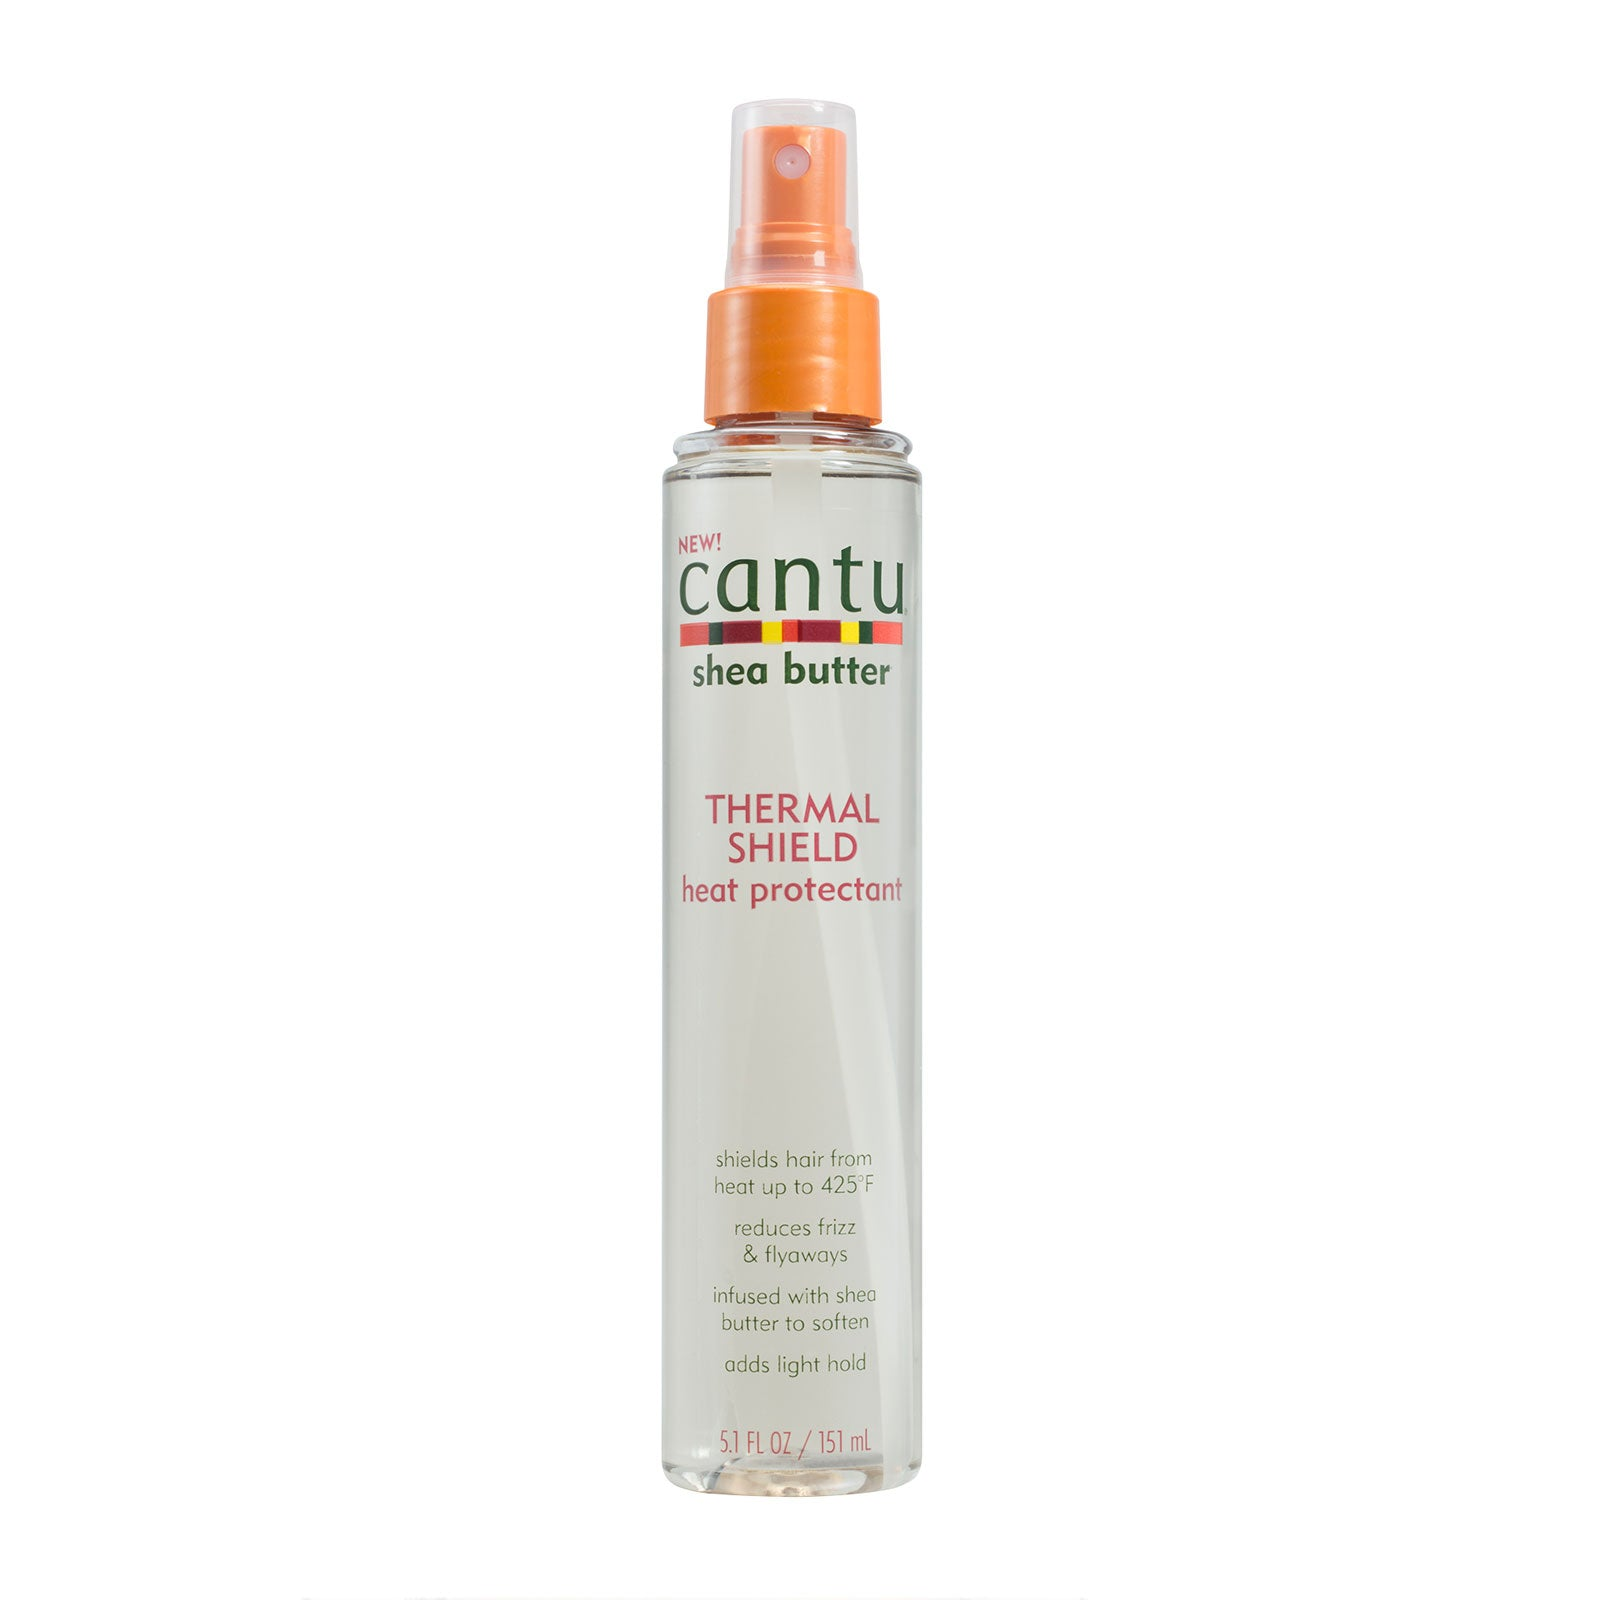 Cantu Shea Butter Thermal Shield Heat Protect 151ml